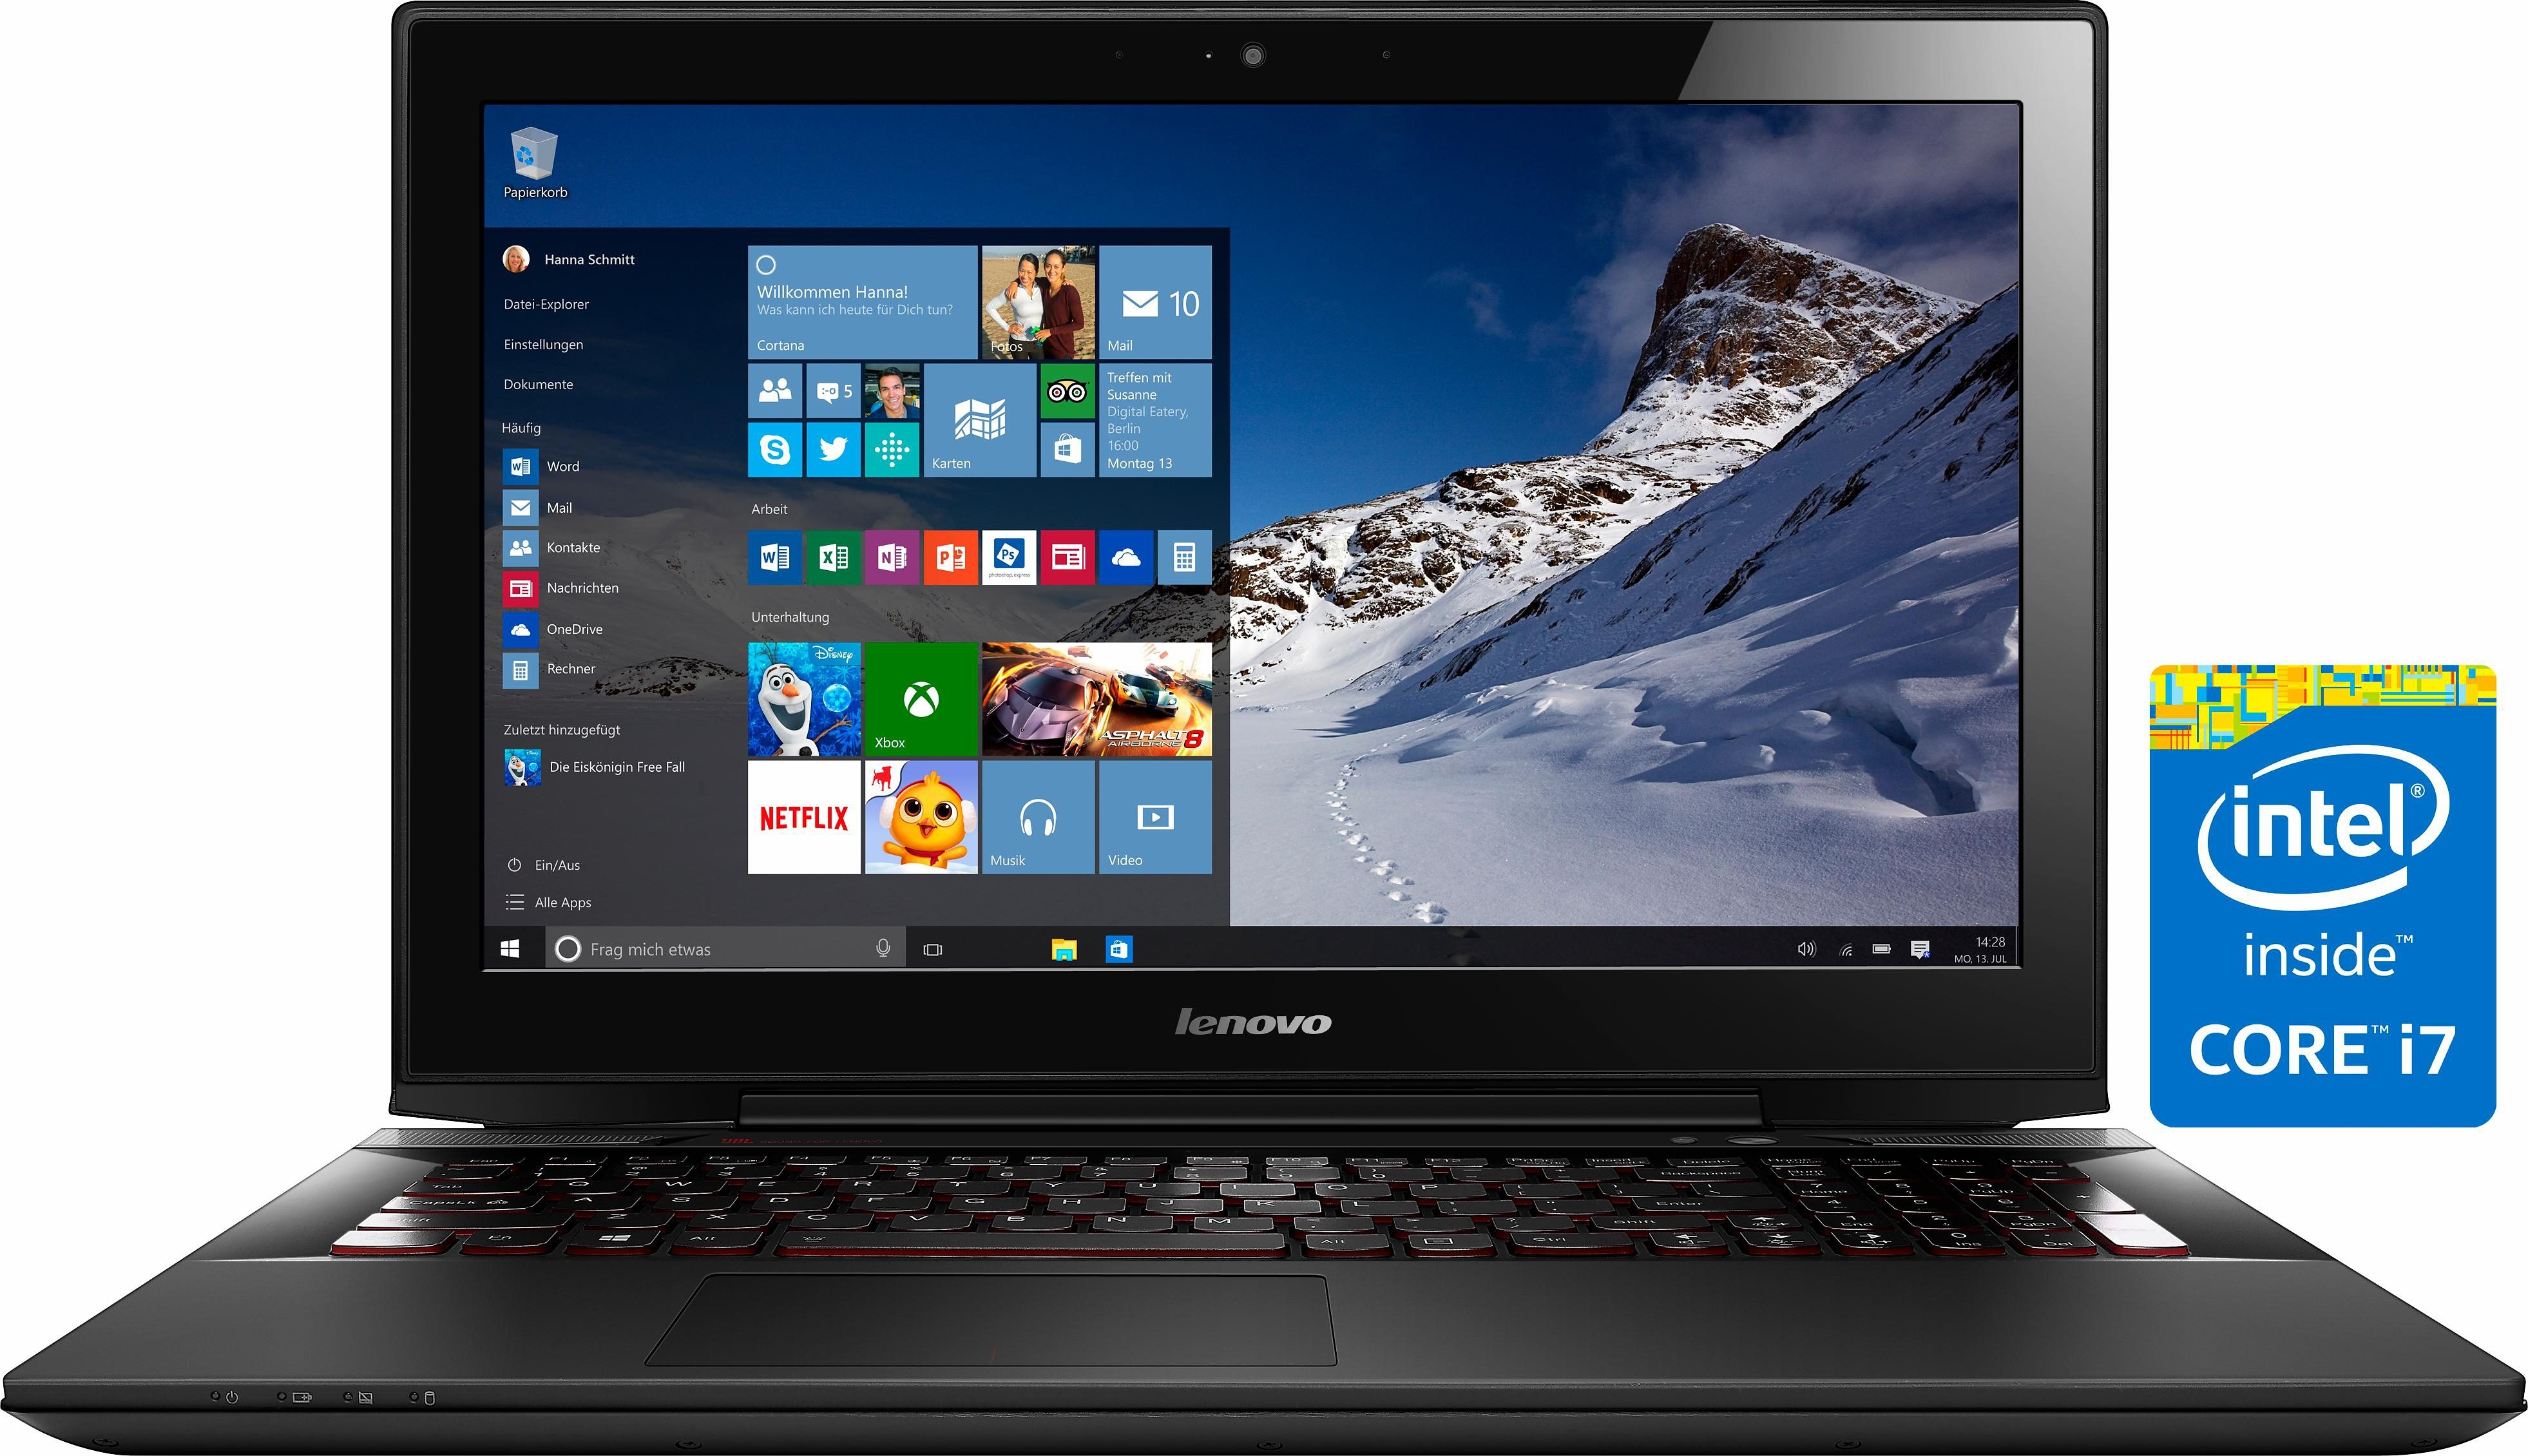 Lenovo Y50-70 Notebook, Intel® Core™ i7, 36,6 cm (15,6 Zoll), 256 GB Speicher, 16384 MB DDR3-RAM